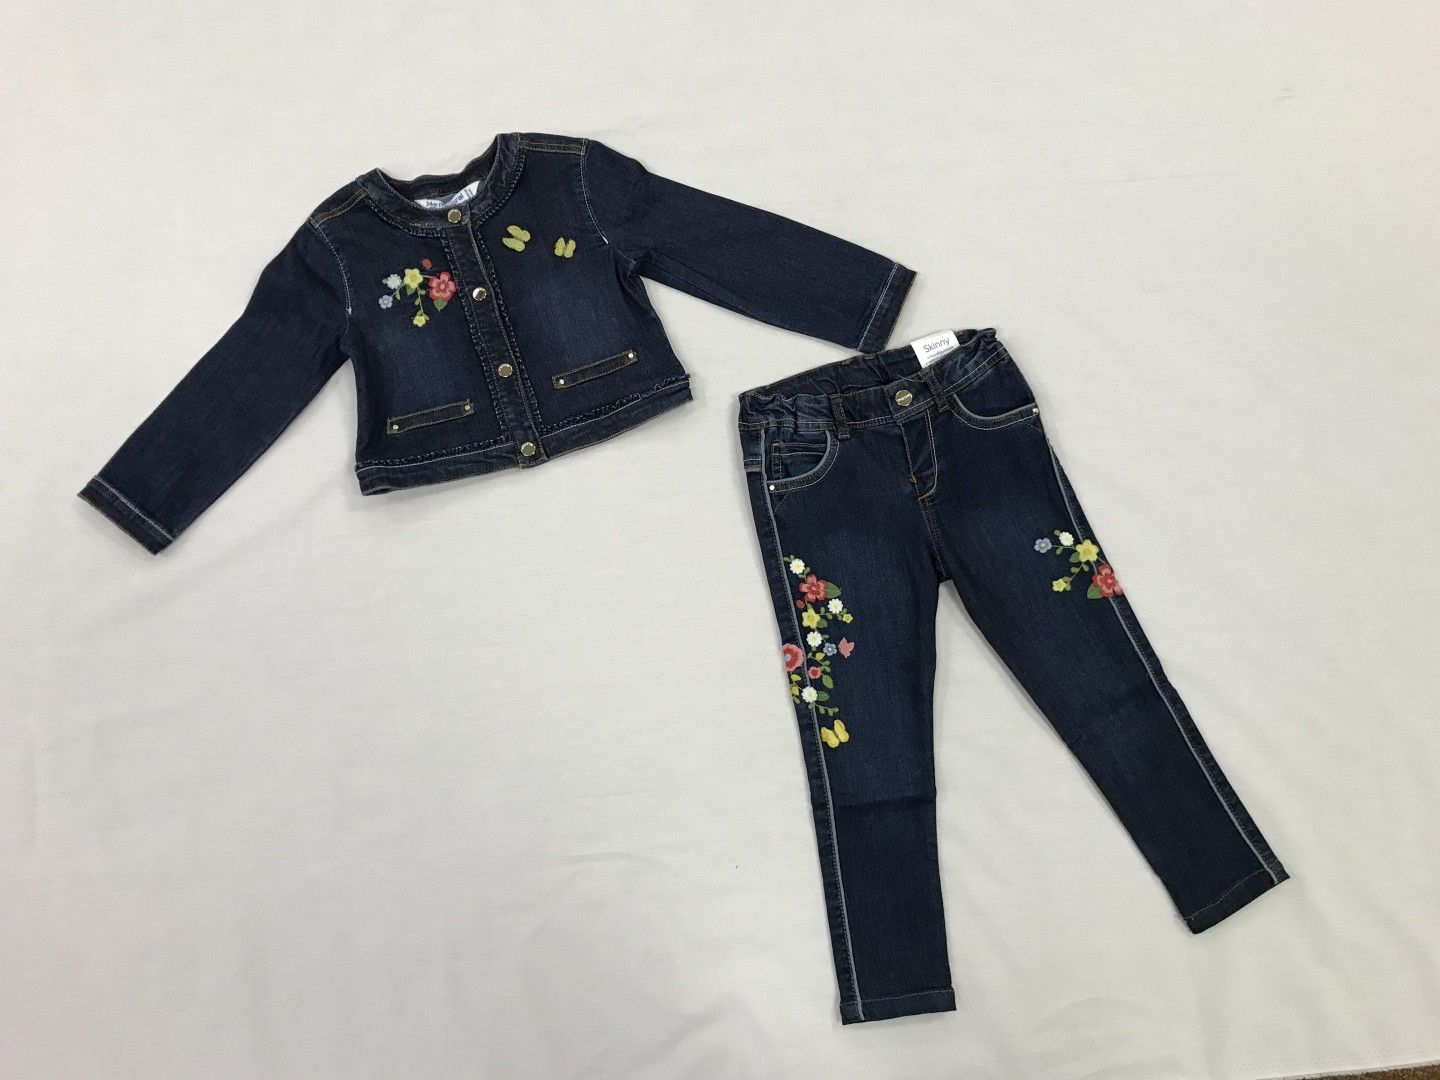 JEAN JACKET AND PANTS 2-PIECE SET SIZES 9M-24M